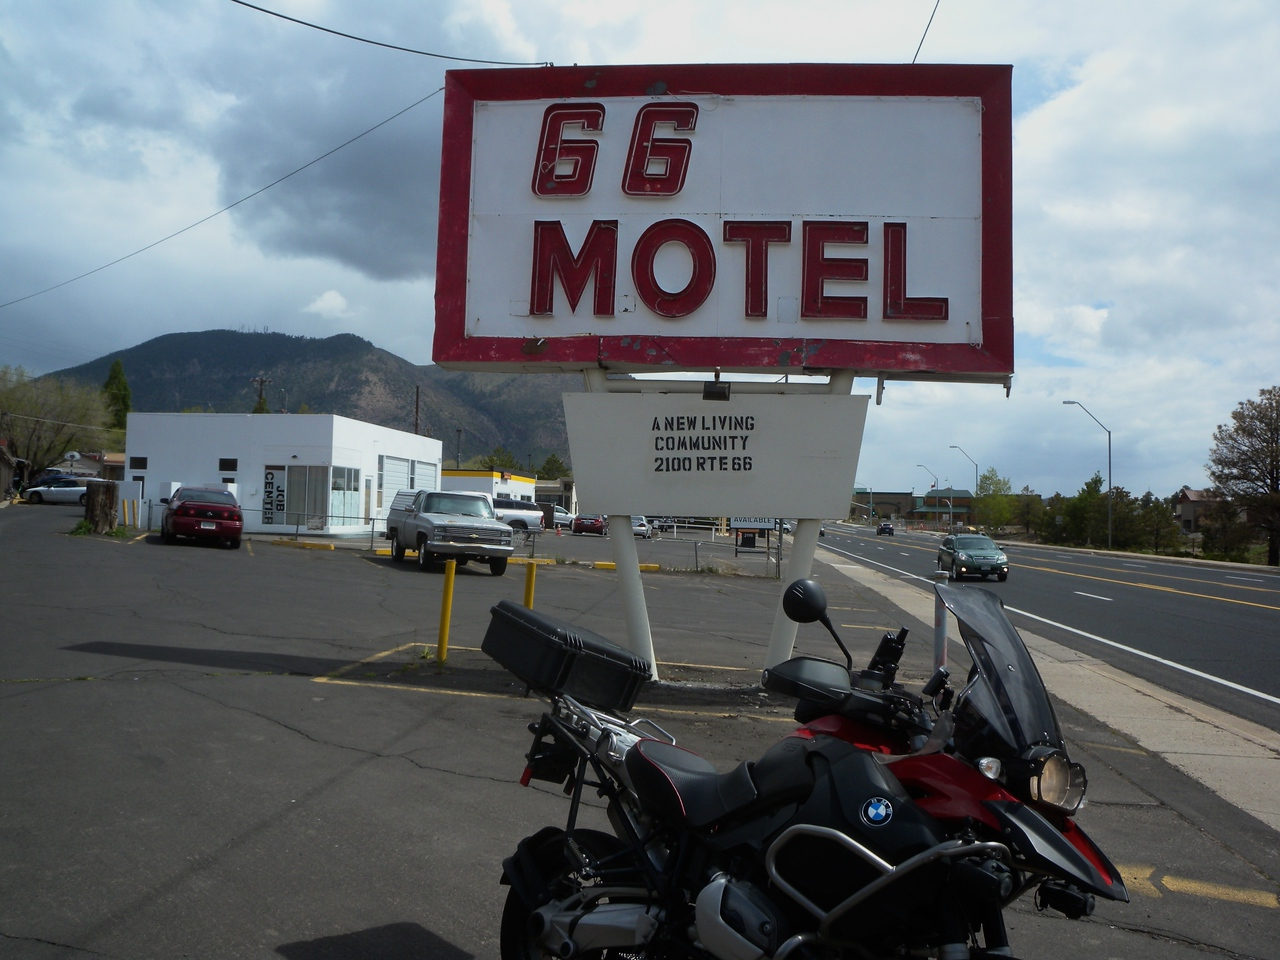 Motel 66, Route 66, Flagstaff, AZ, closed, no longer a motel